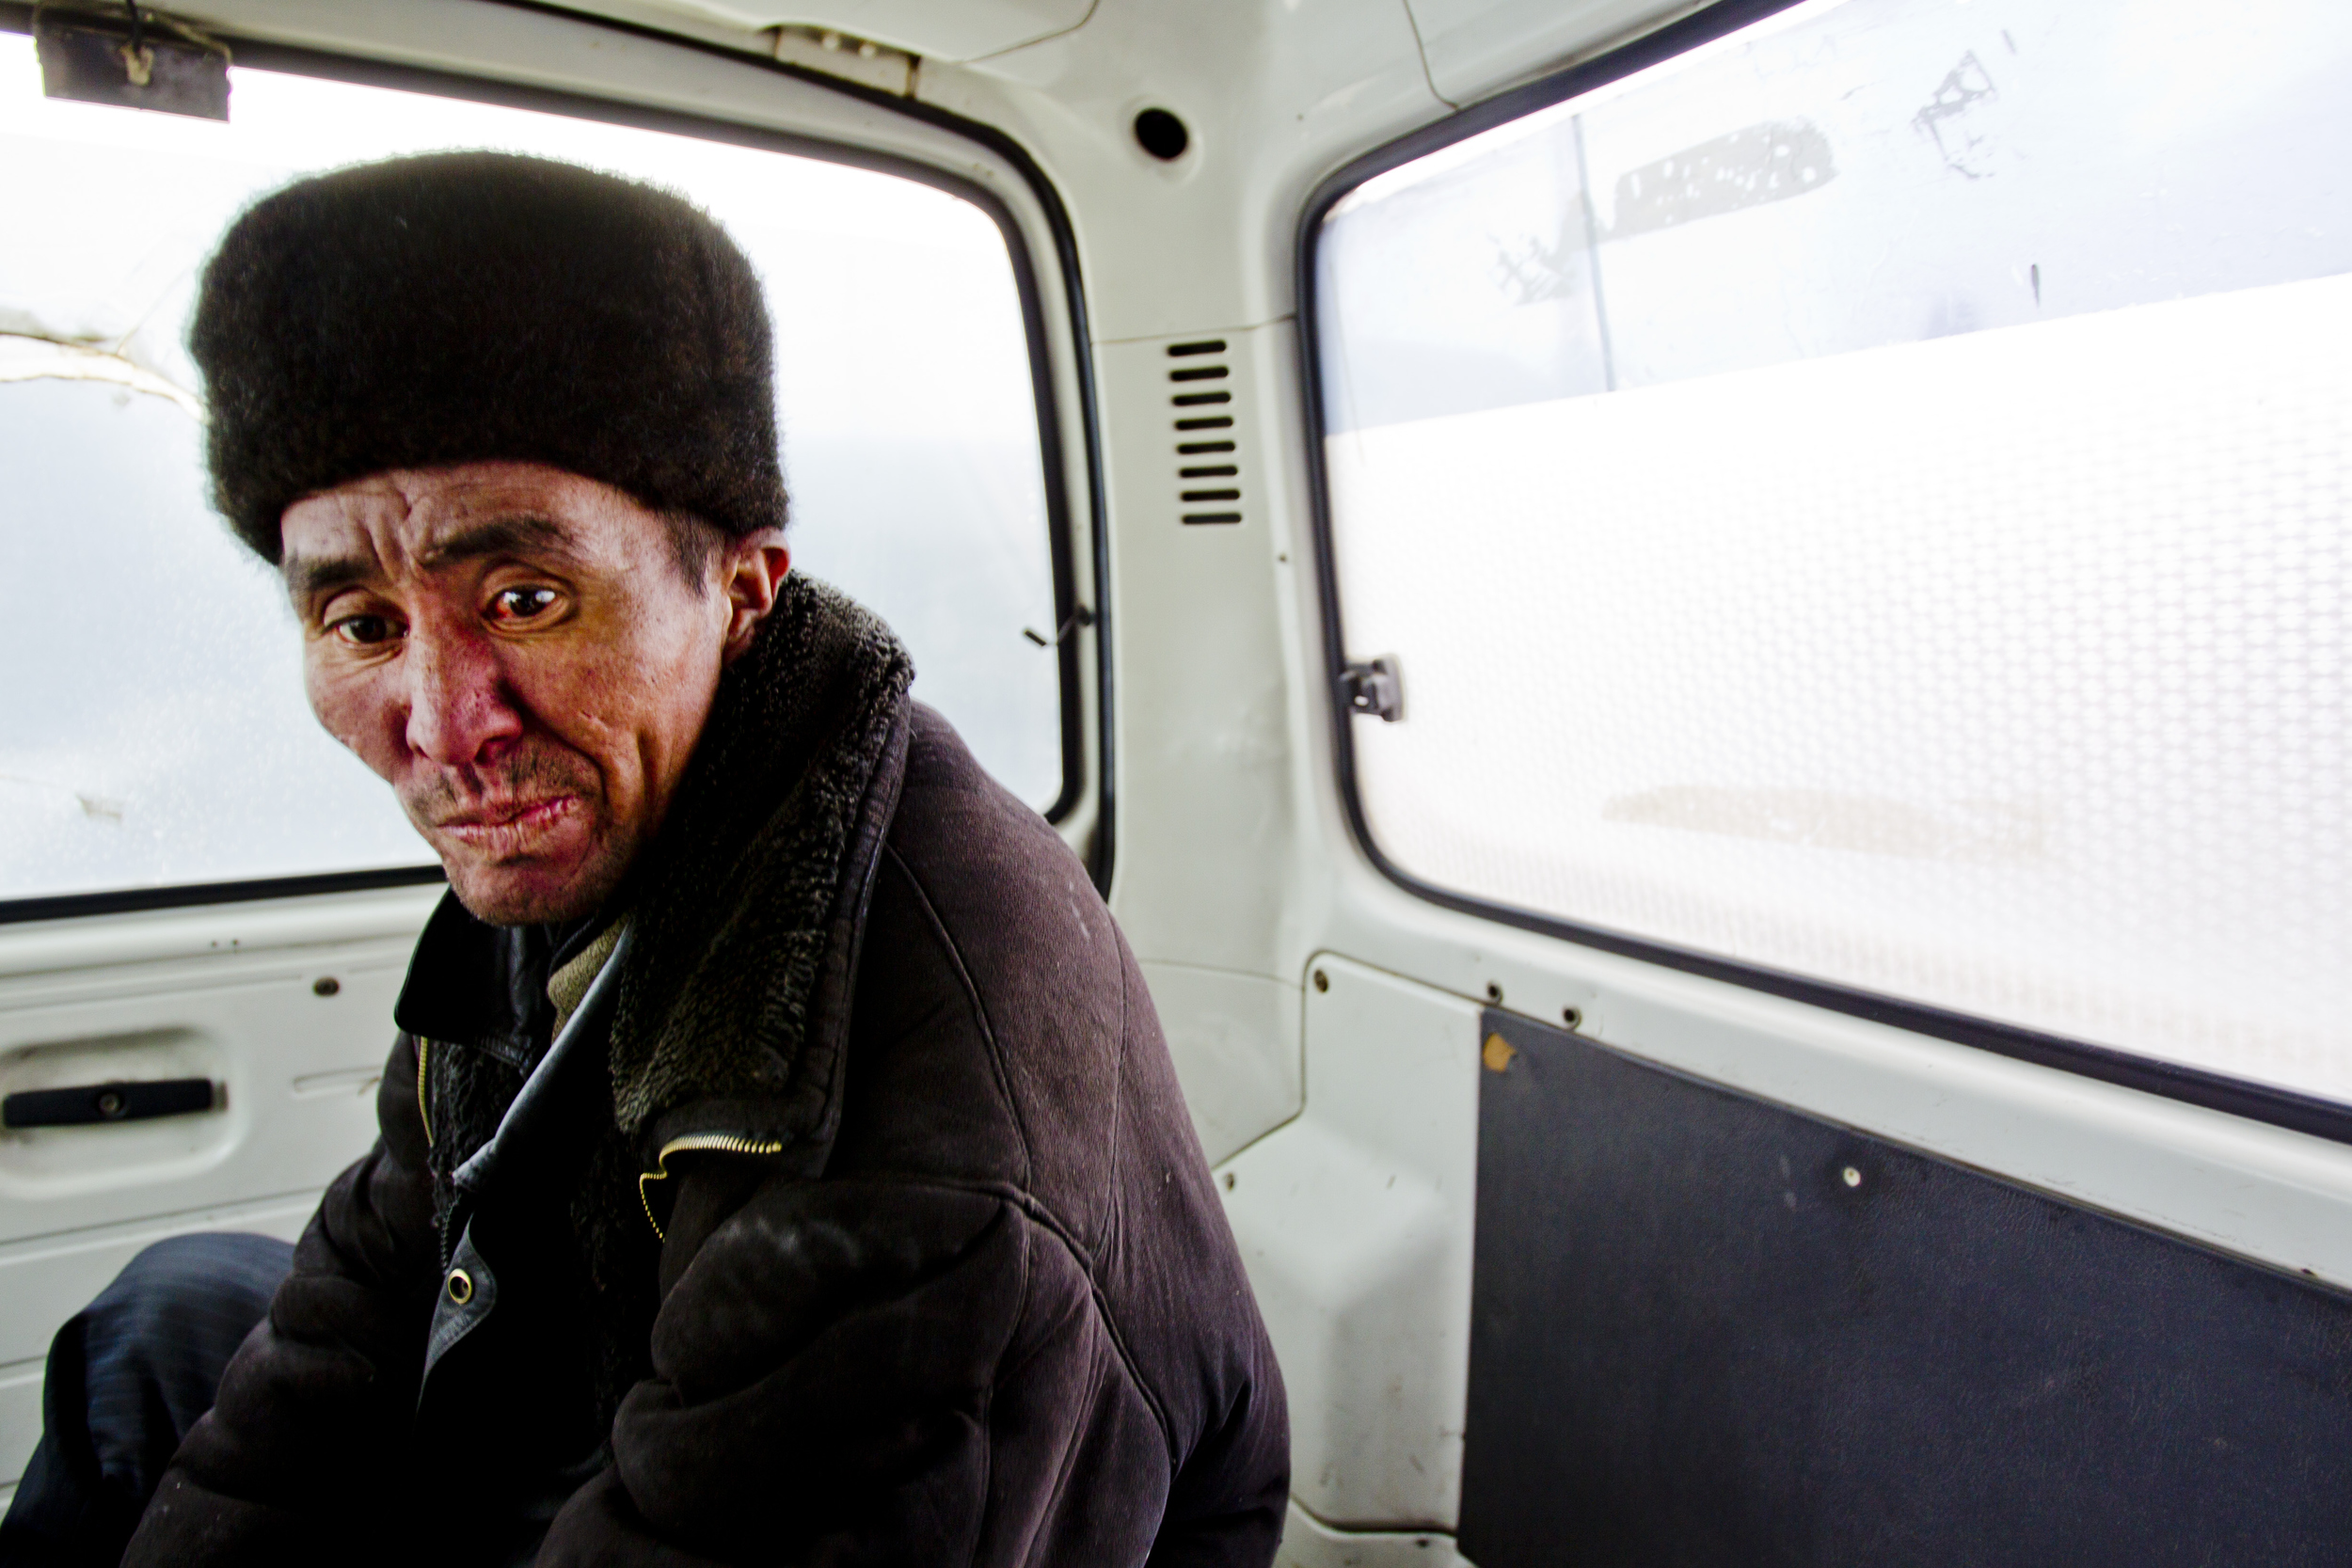 The constant below-freezing temperatures in winter make being homeless deadly. People often live in the sewer system in attempt to stay warm, but after awhile many end up jammed in overcrowded public hospitals because of frostbite, or burns from passing out on the hot sewer pipes or camp fires. Amputation of the toes, feet and fingertips because of frostbite is a common occurrence.  A homeless man rides in an ambulance to Bishkek Hospital Number 4 for frostbite treatment.